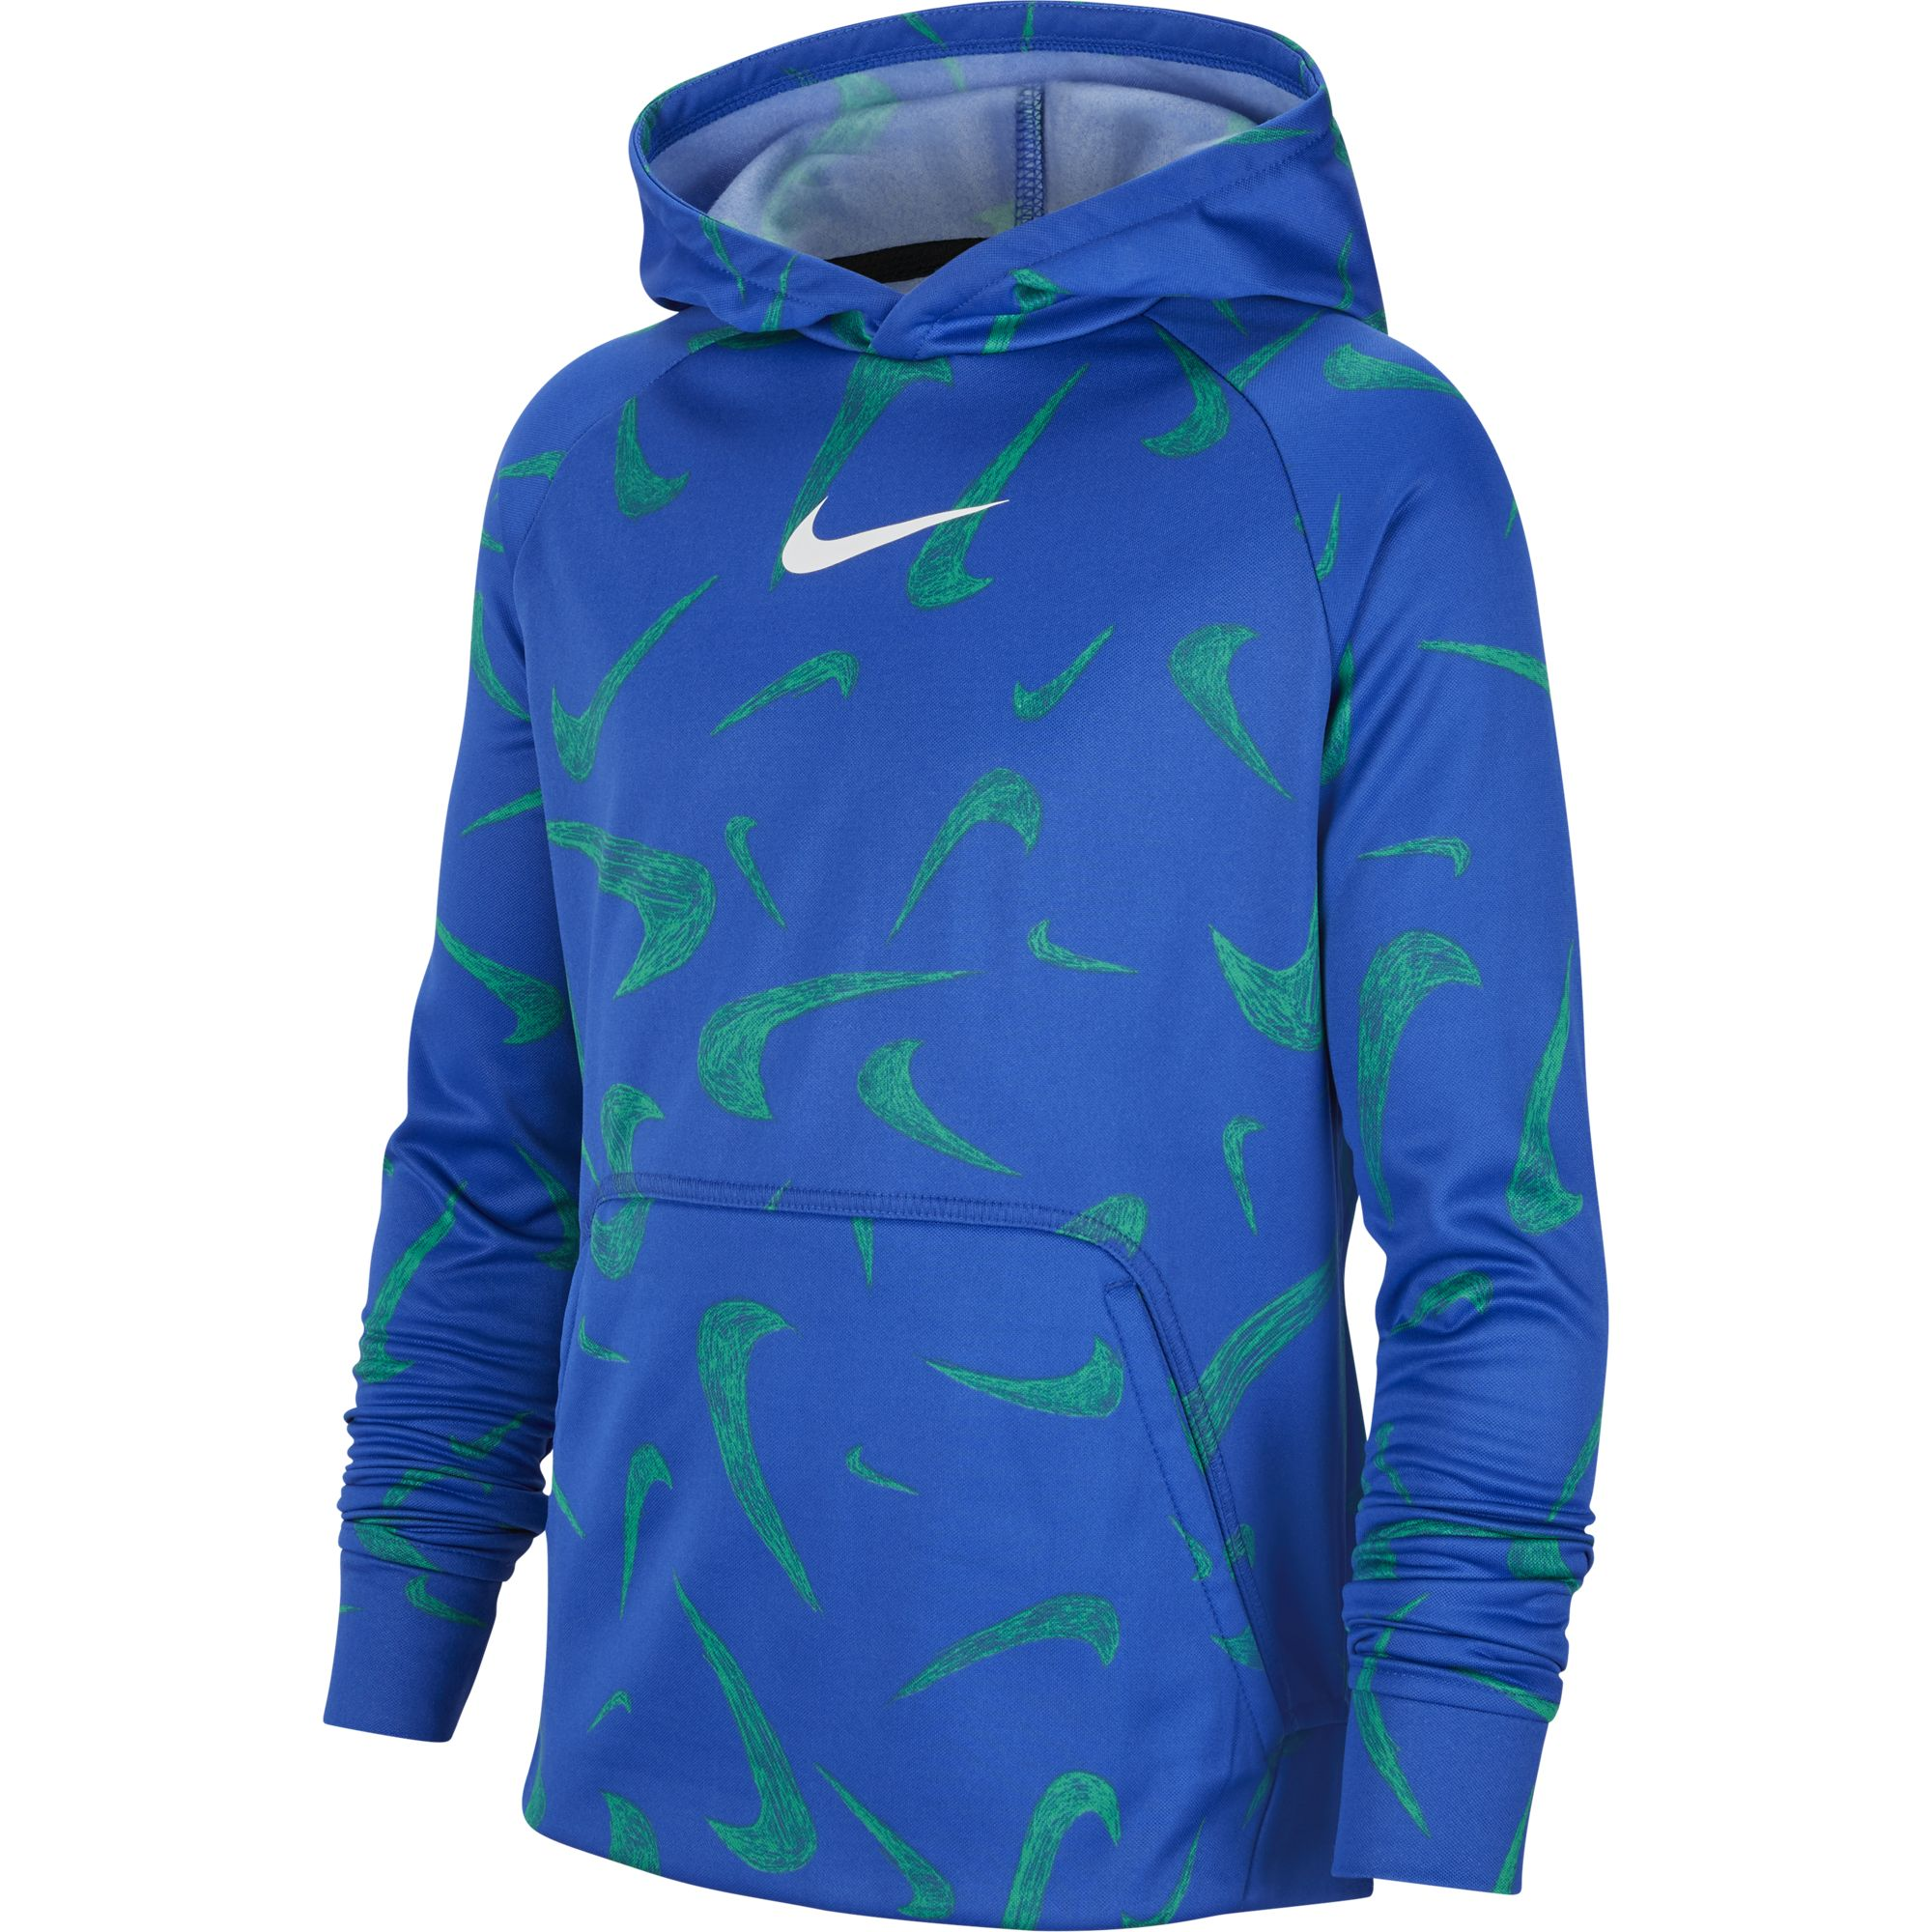 Boys' Printed Pullover Training Hoodie, Blue, swatch